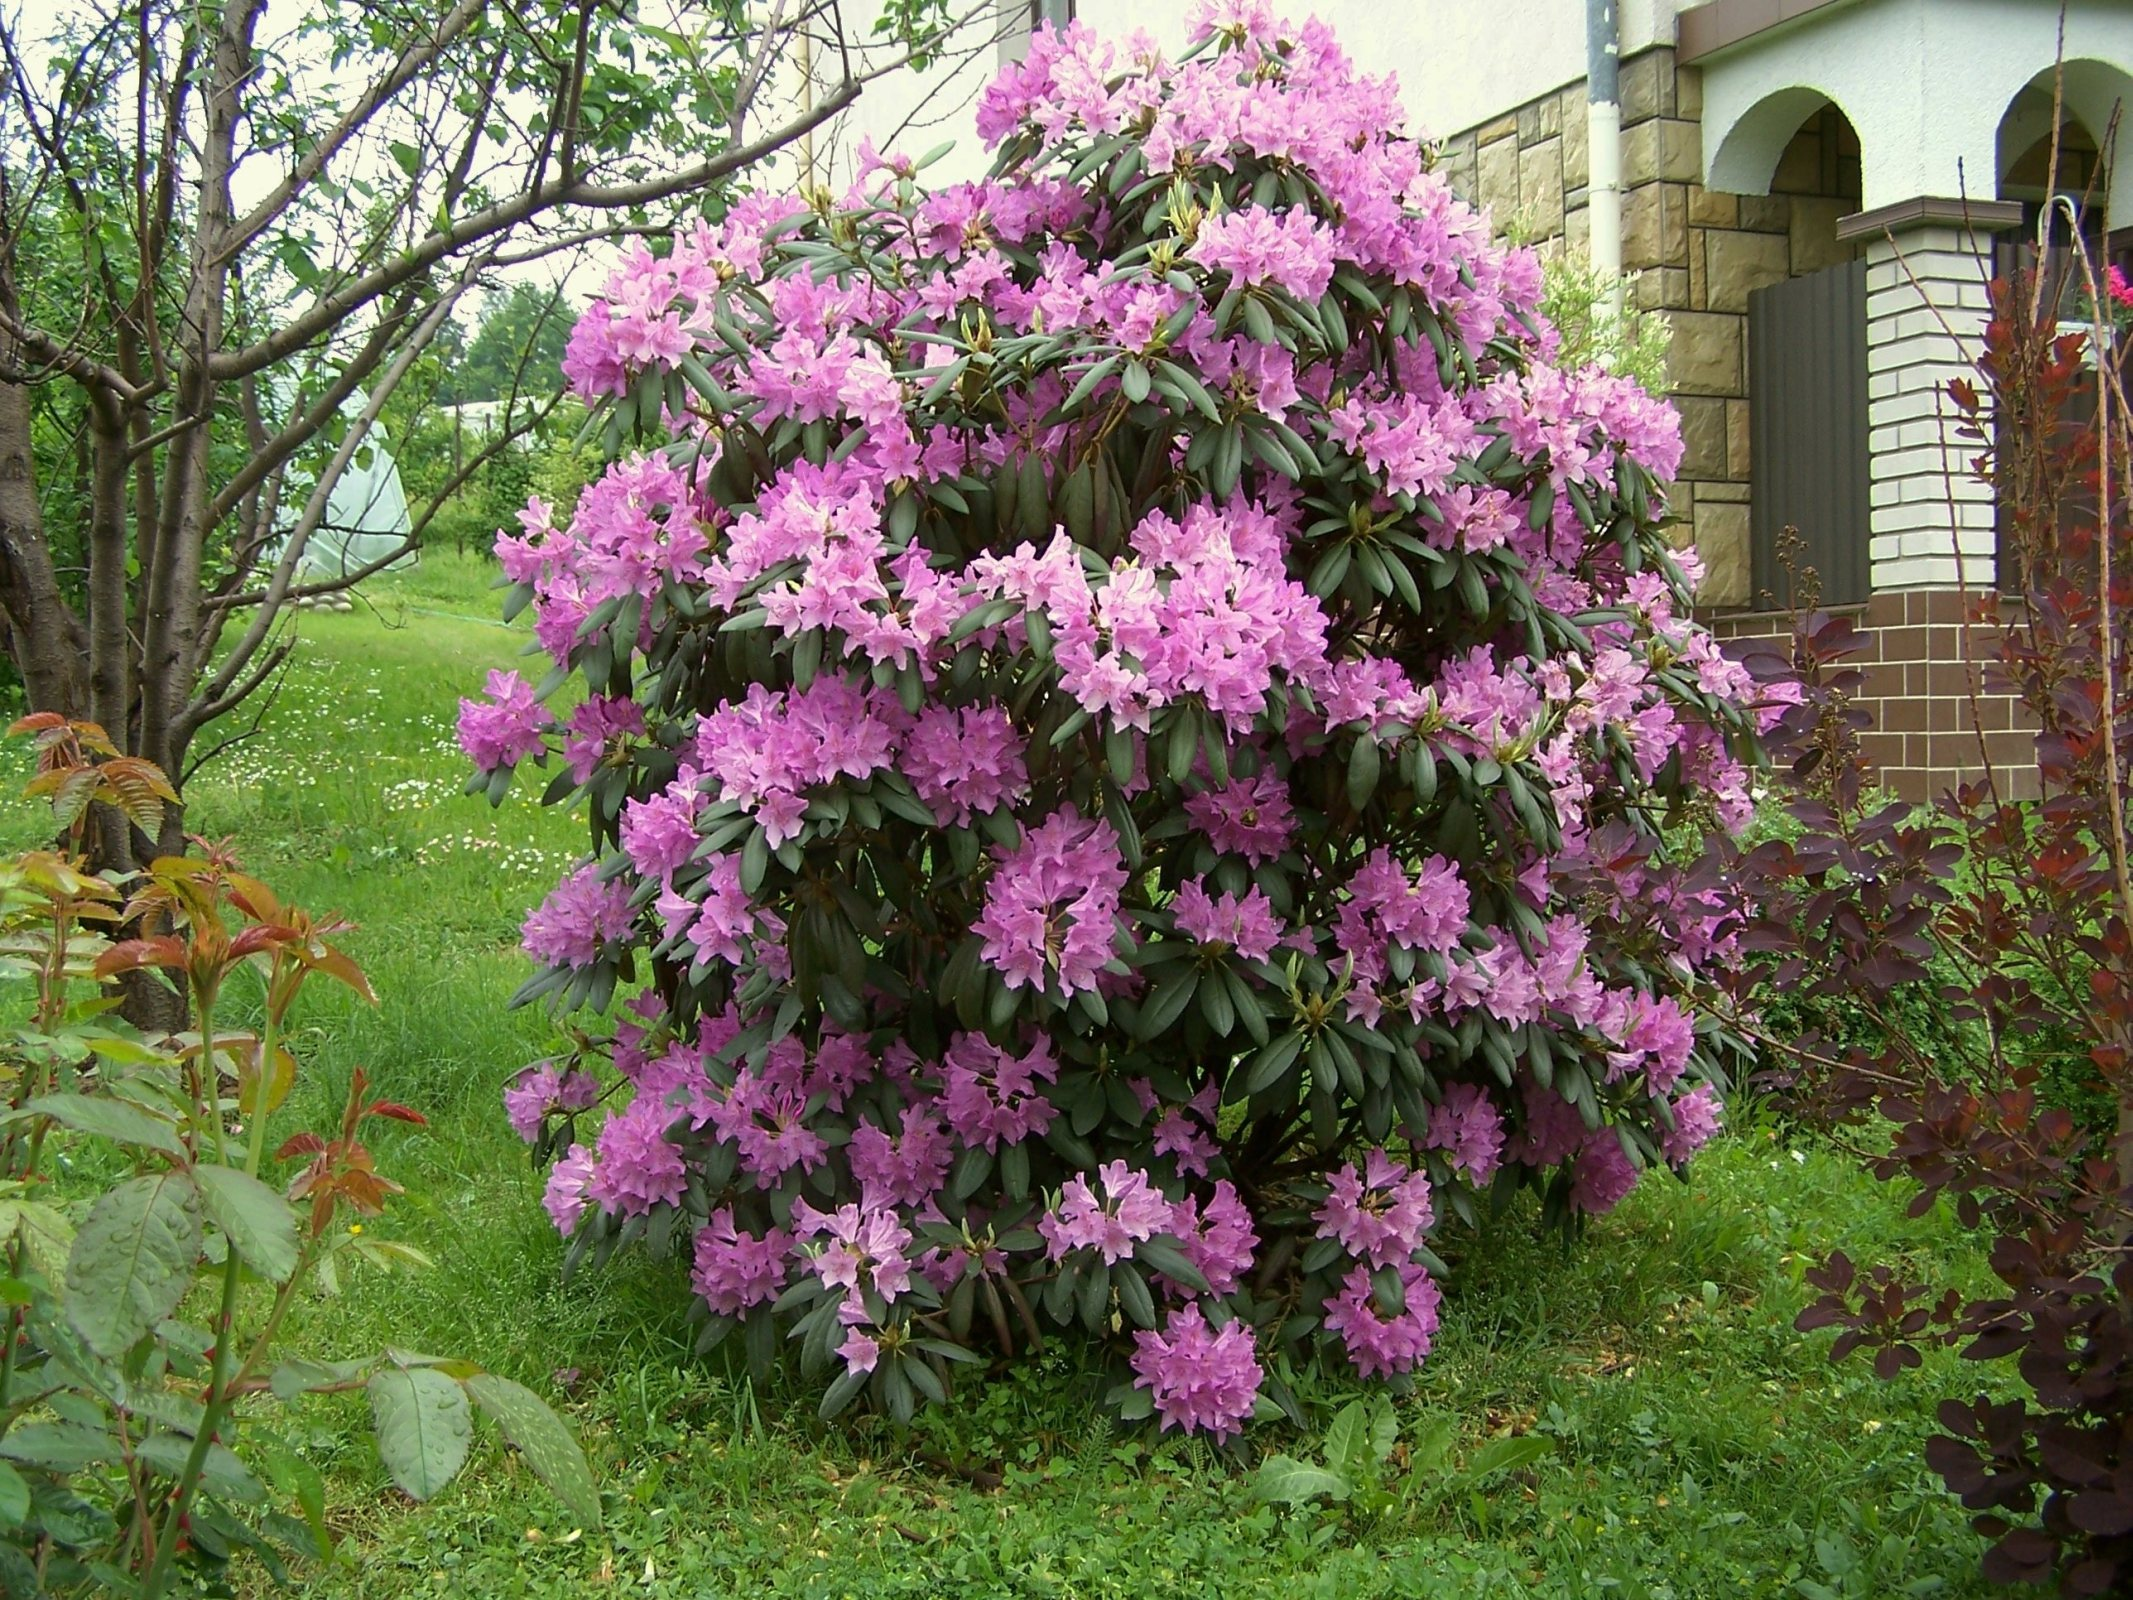 Rhododendron catawbiense in the landscape.